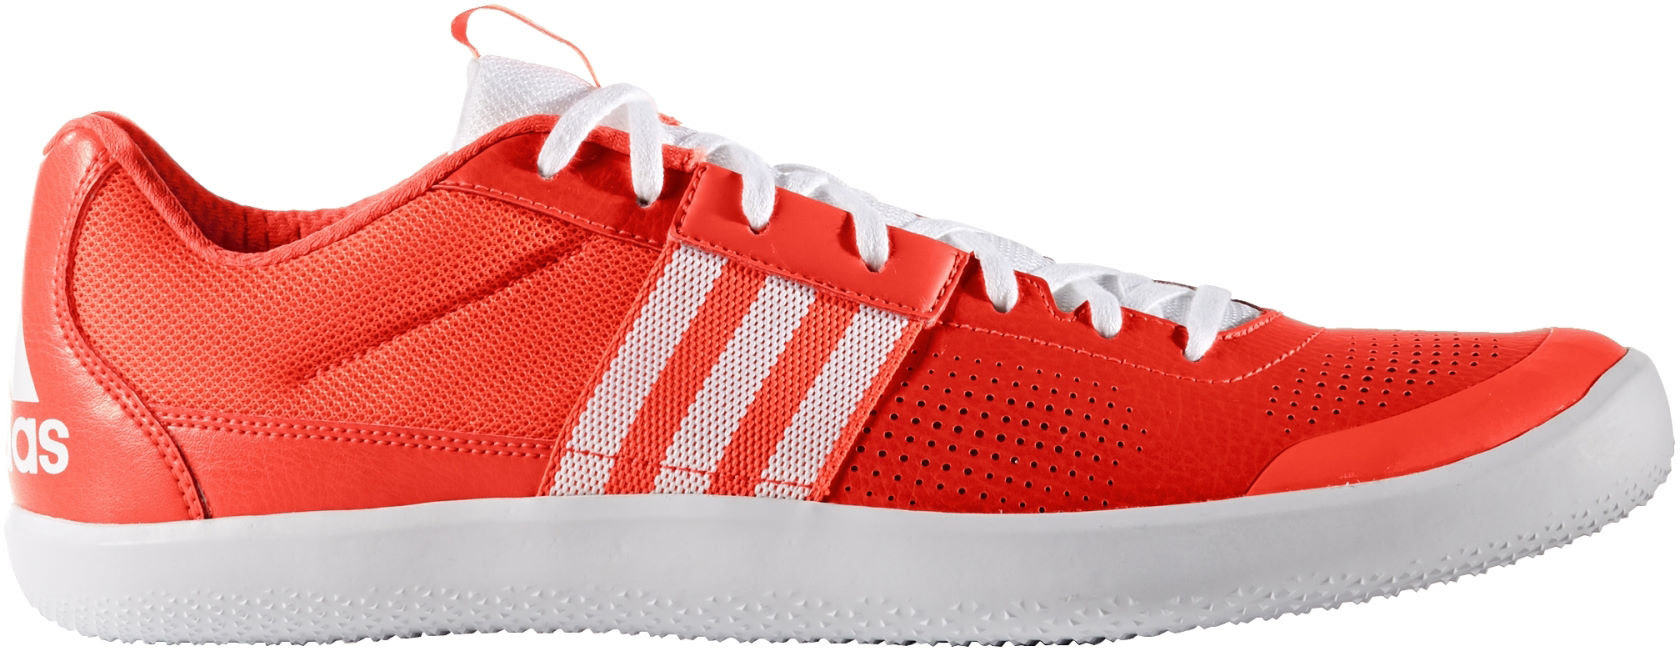 c65e6cfd591 ... adidas throwing shoes 2017 Défi J arrête, j y gagne! lace up in 78e2c  7ad11 ...